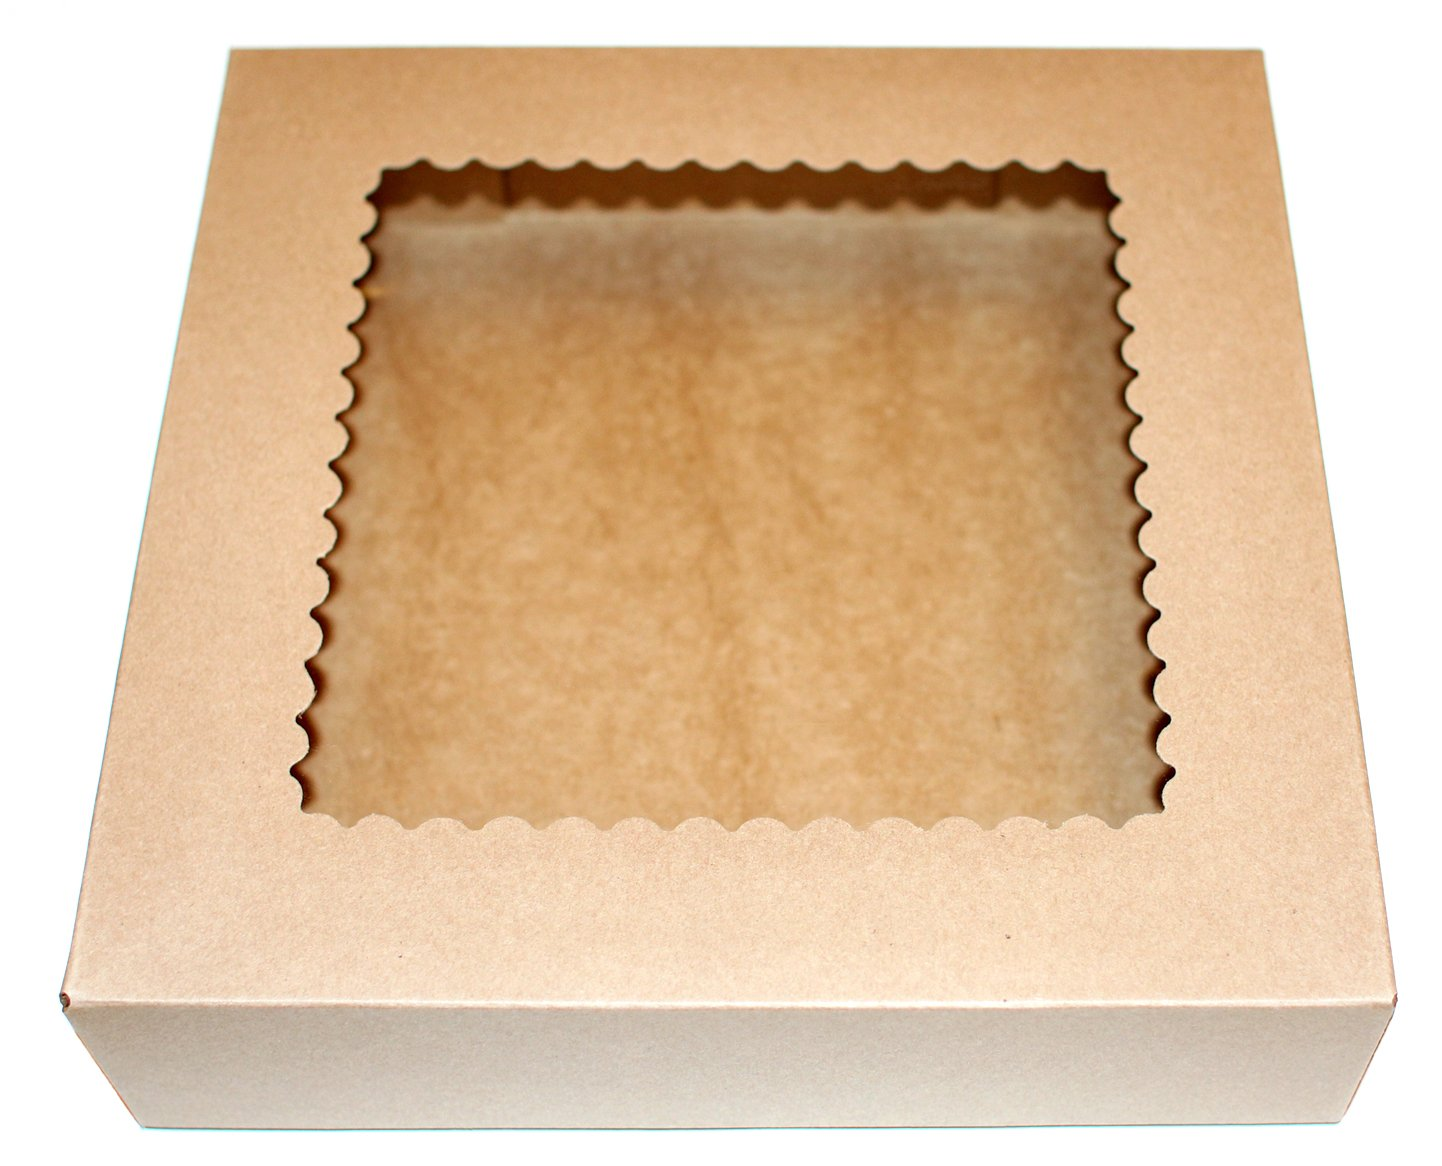 Bakery Boxes with Clear Window (Pack of 10) - 10'' x 10'' x 2 1/2'' - Brown Kraft Paper Box for Pies, Cookies, Cakes, or Cupcakes - Superior Quality